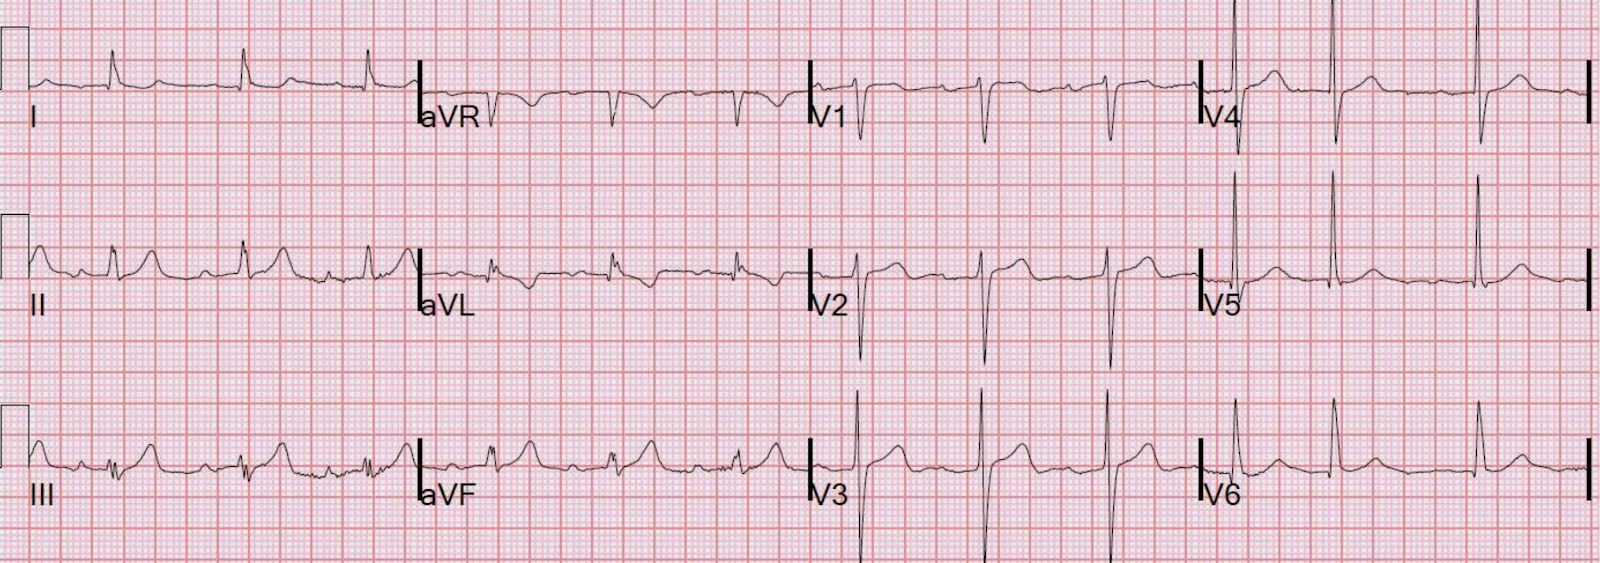 Image from Stephen Smith, MD. http://hqmeded-ecg.blogspot.com/2011/02/inferior-hyperacute-t-waves-clue-is-t.html